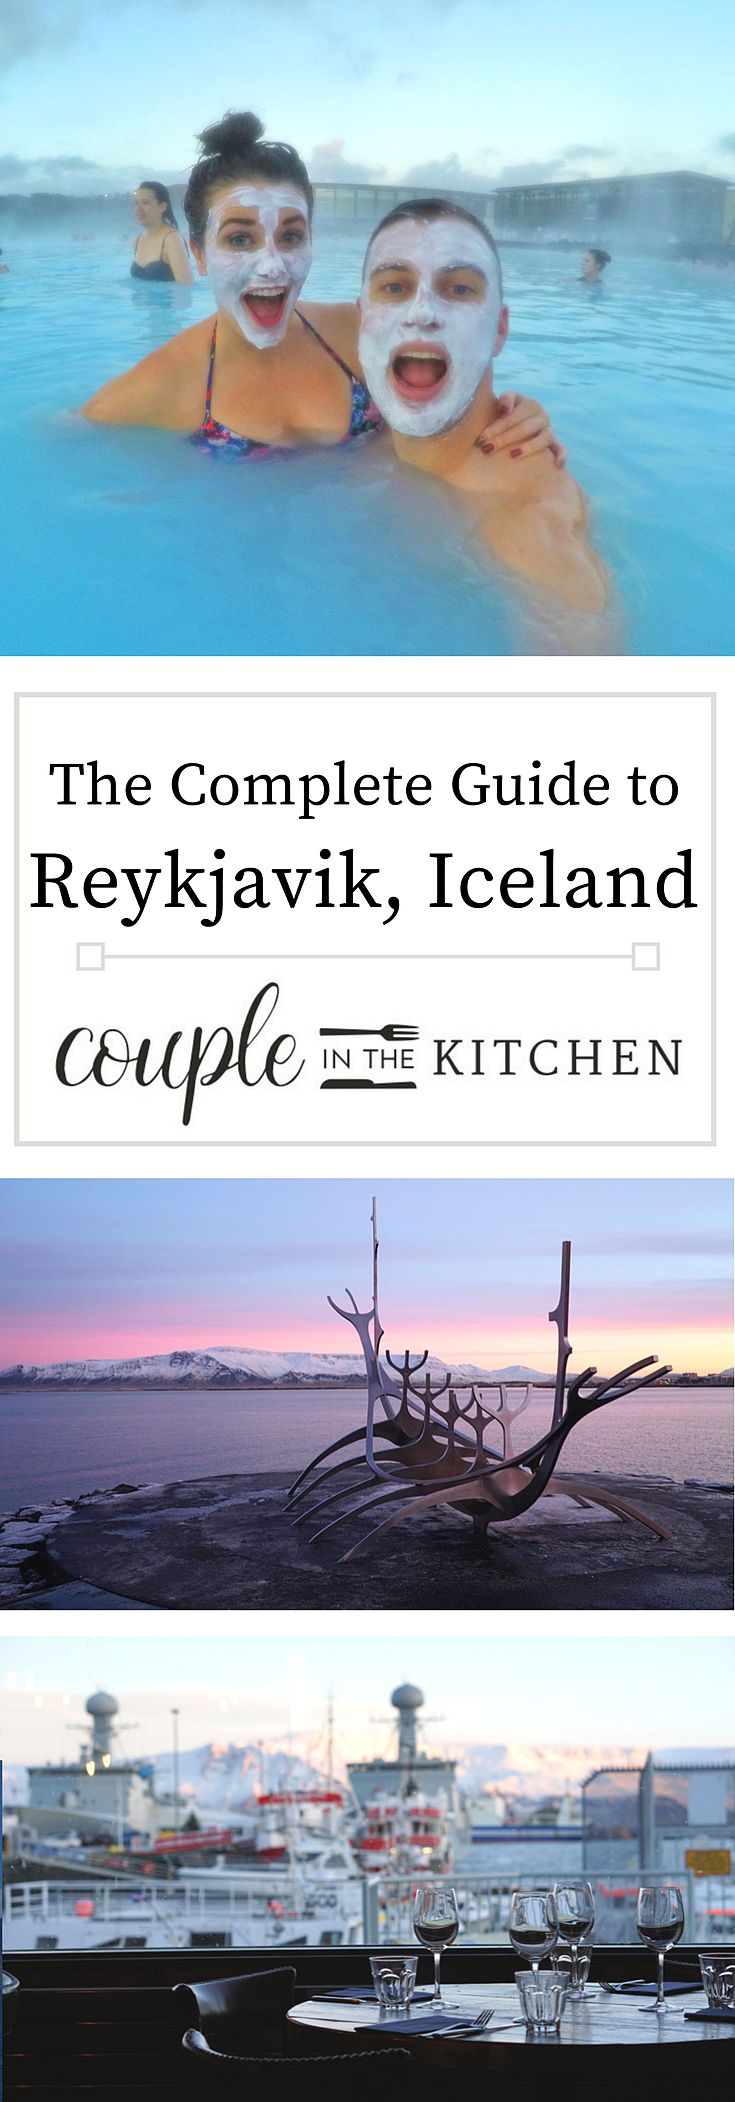 The Complete Guide to Reykjavik, Iceland | coupleinthekitchen.com